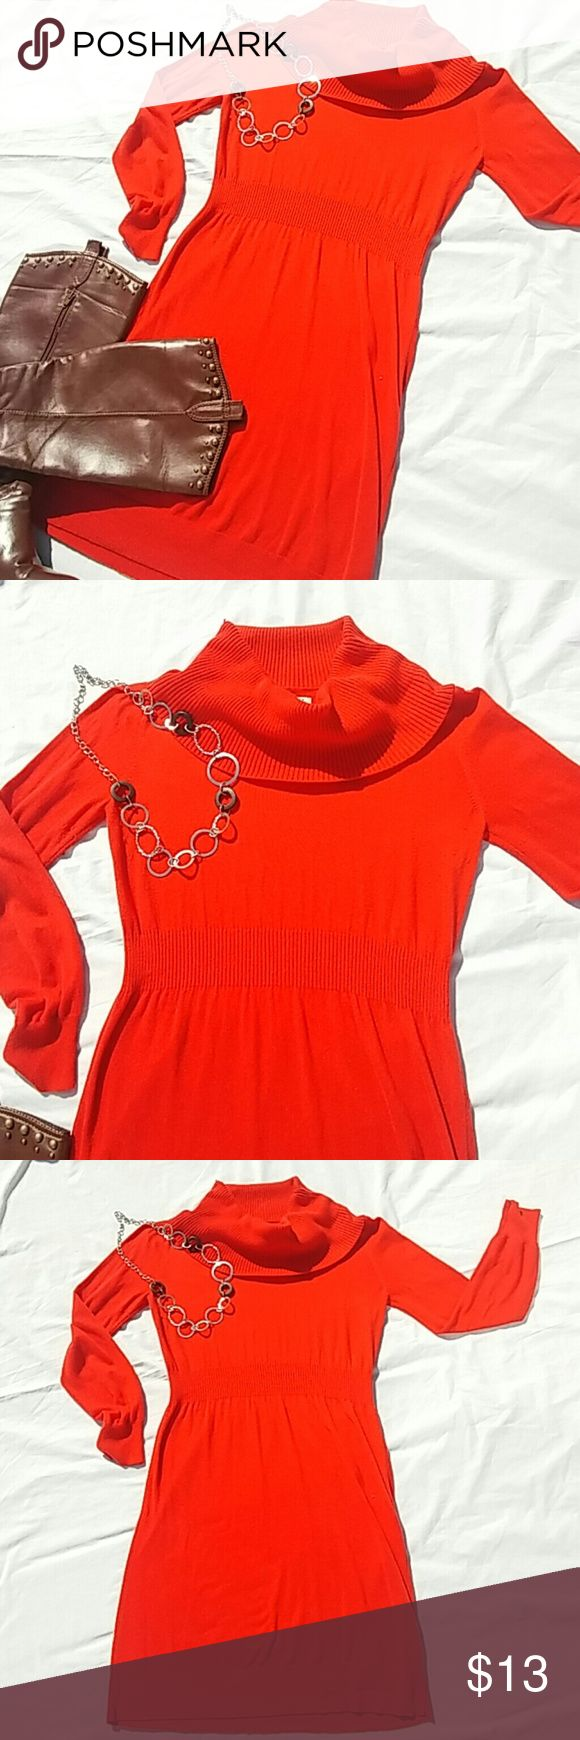 "Cute Fall sweater dress Ready for fall!🍁 EUC Great autumn color. Style with your favorite boots. 👢 length 33""from shoulder, 18"" from armpit to armpit. Great cowl neck! Minor pilling in each arm pit. Old Navy Dresses"